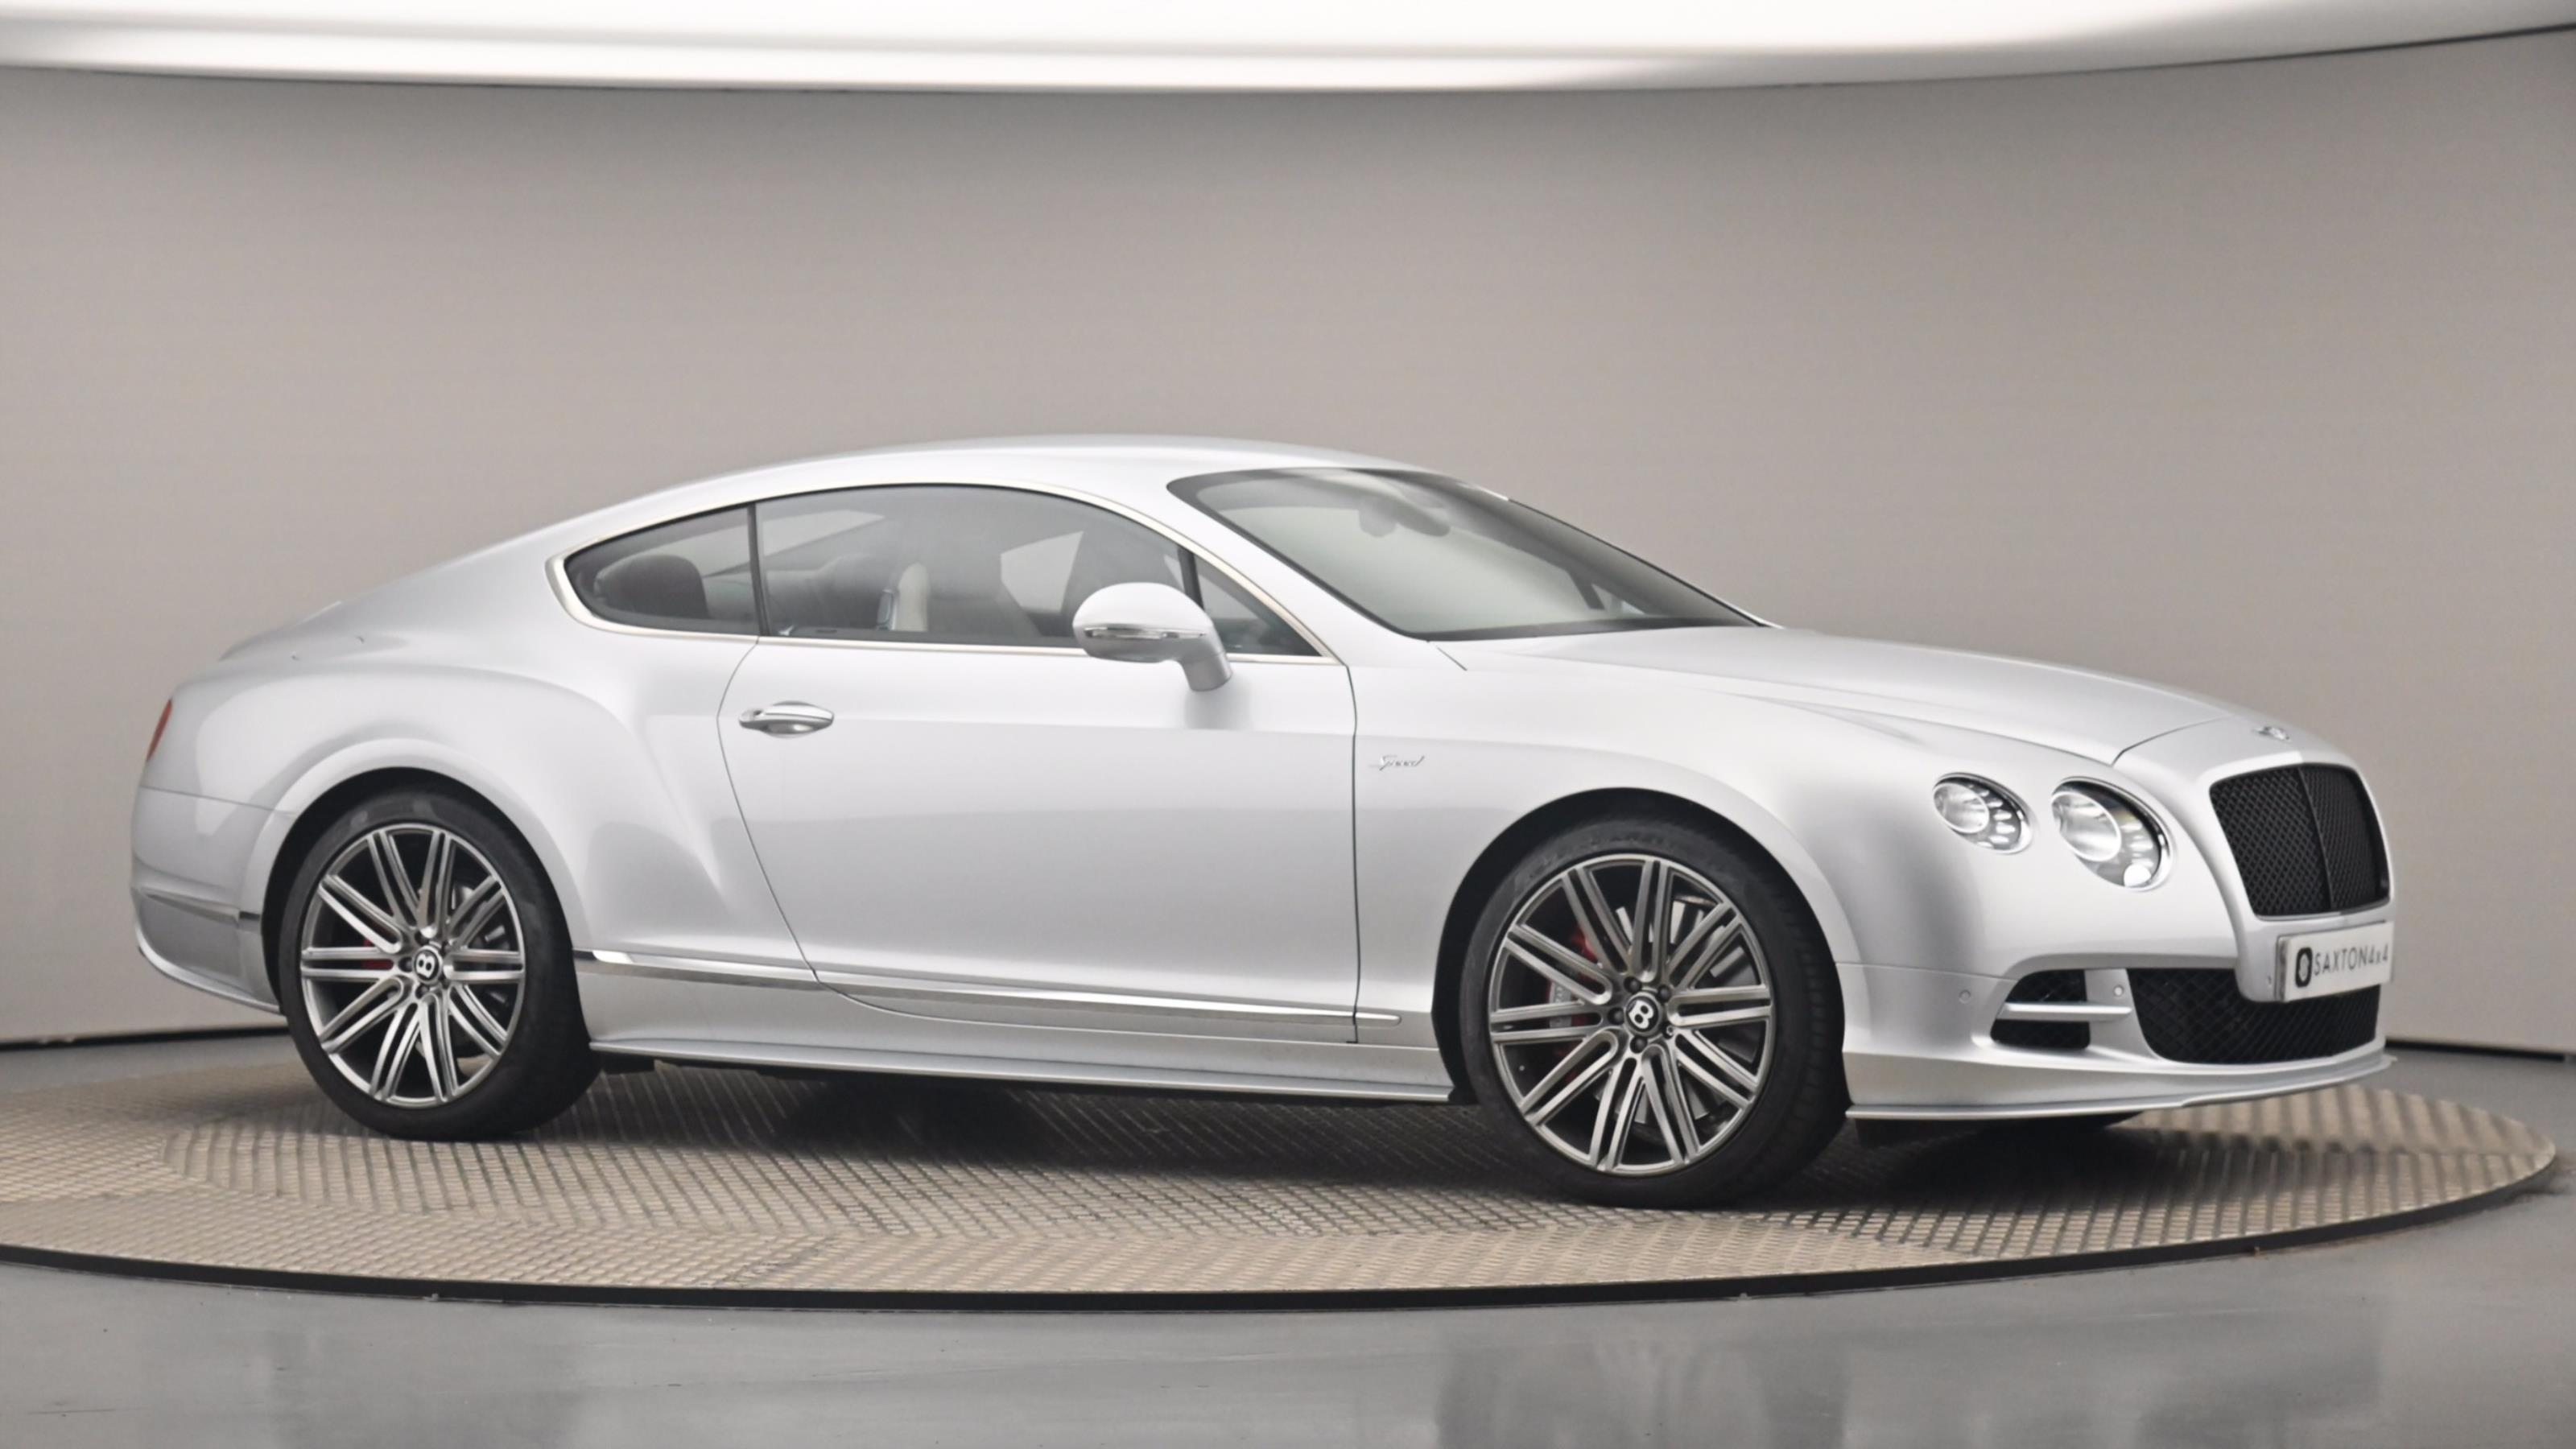 Used 2017 Bentley CONTINENTAL GT 6.0 W12 Speed 2dr Auto Grey at Saxton4x4